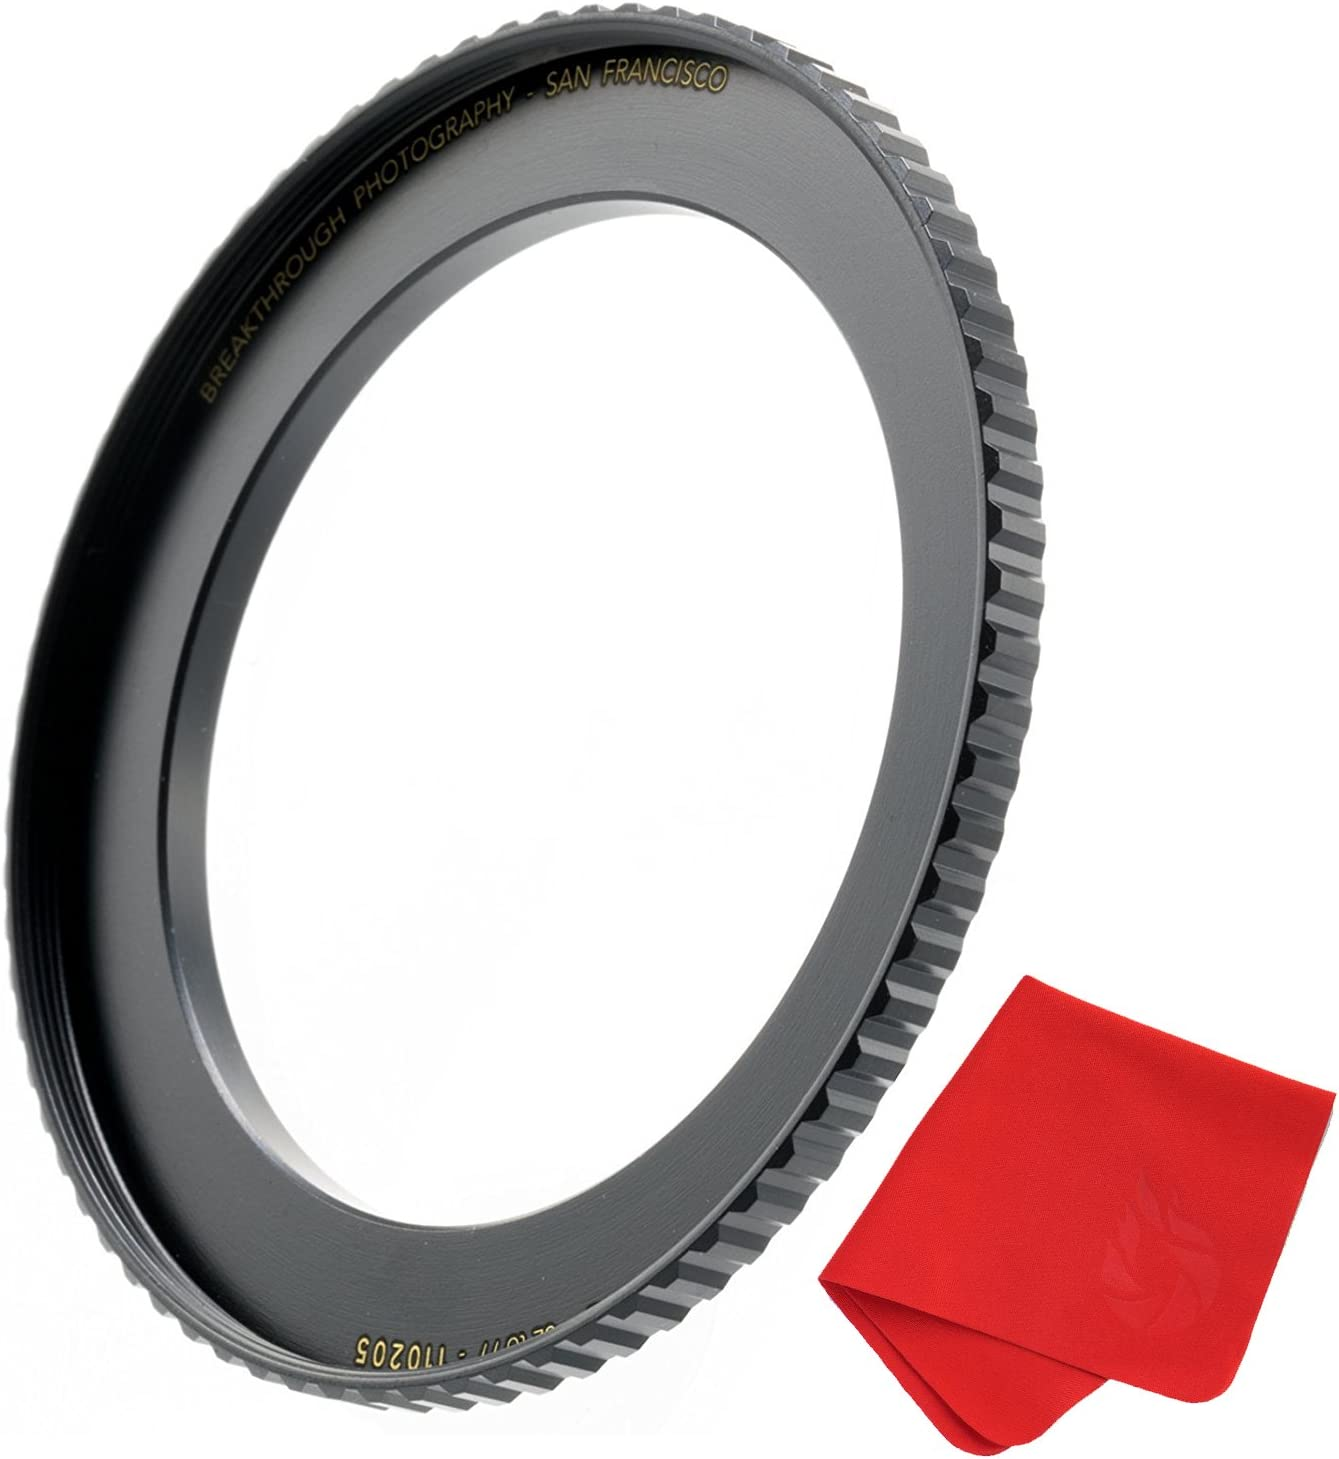 Breakthrough price Max 89% OFF Photography 67mm to 82mm Ring Adapter Step-Up Lens